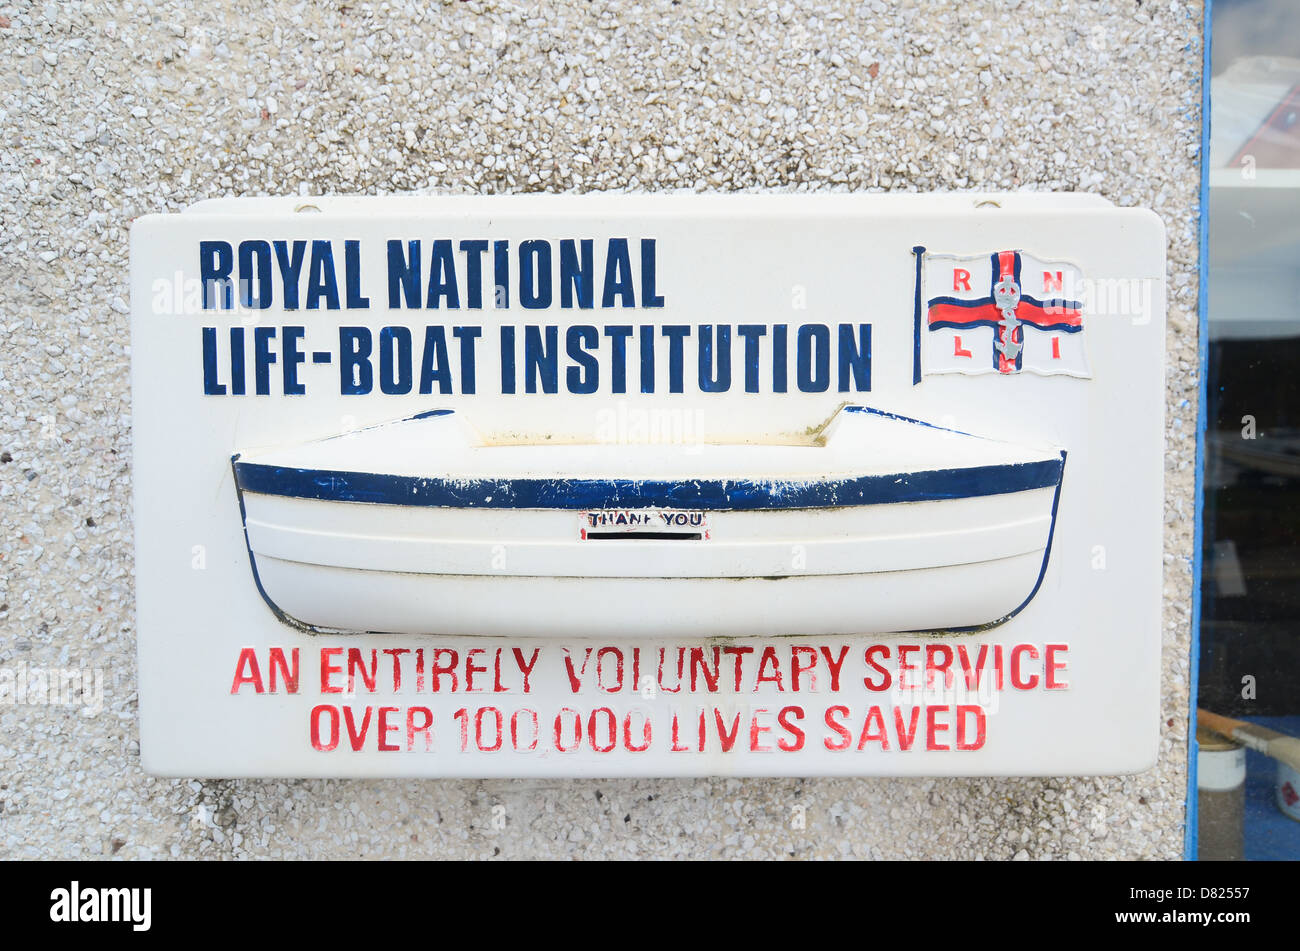 An donation box for the Royal National Lifeboat Institution (RNLI) in the UK. - Stock Image